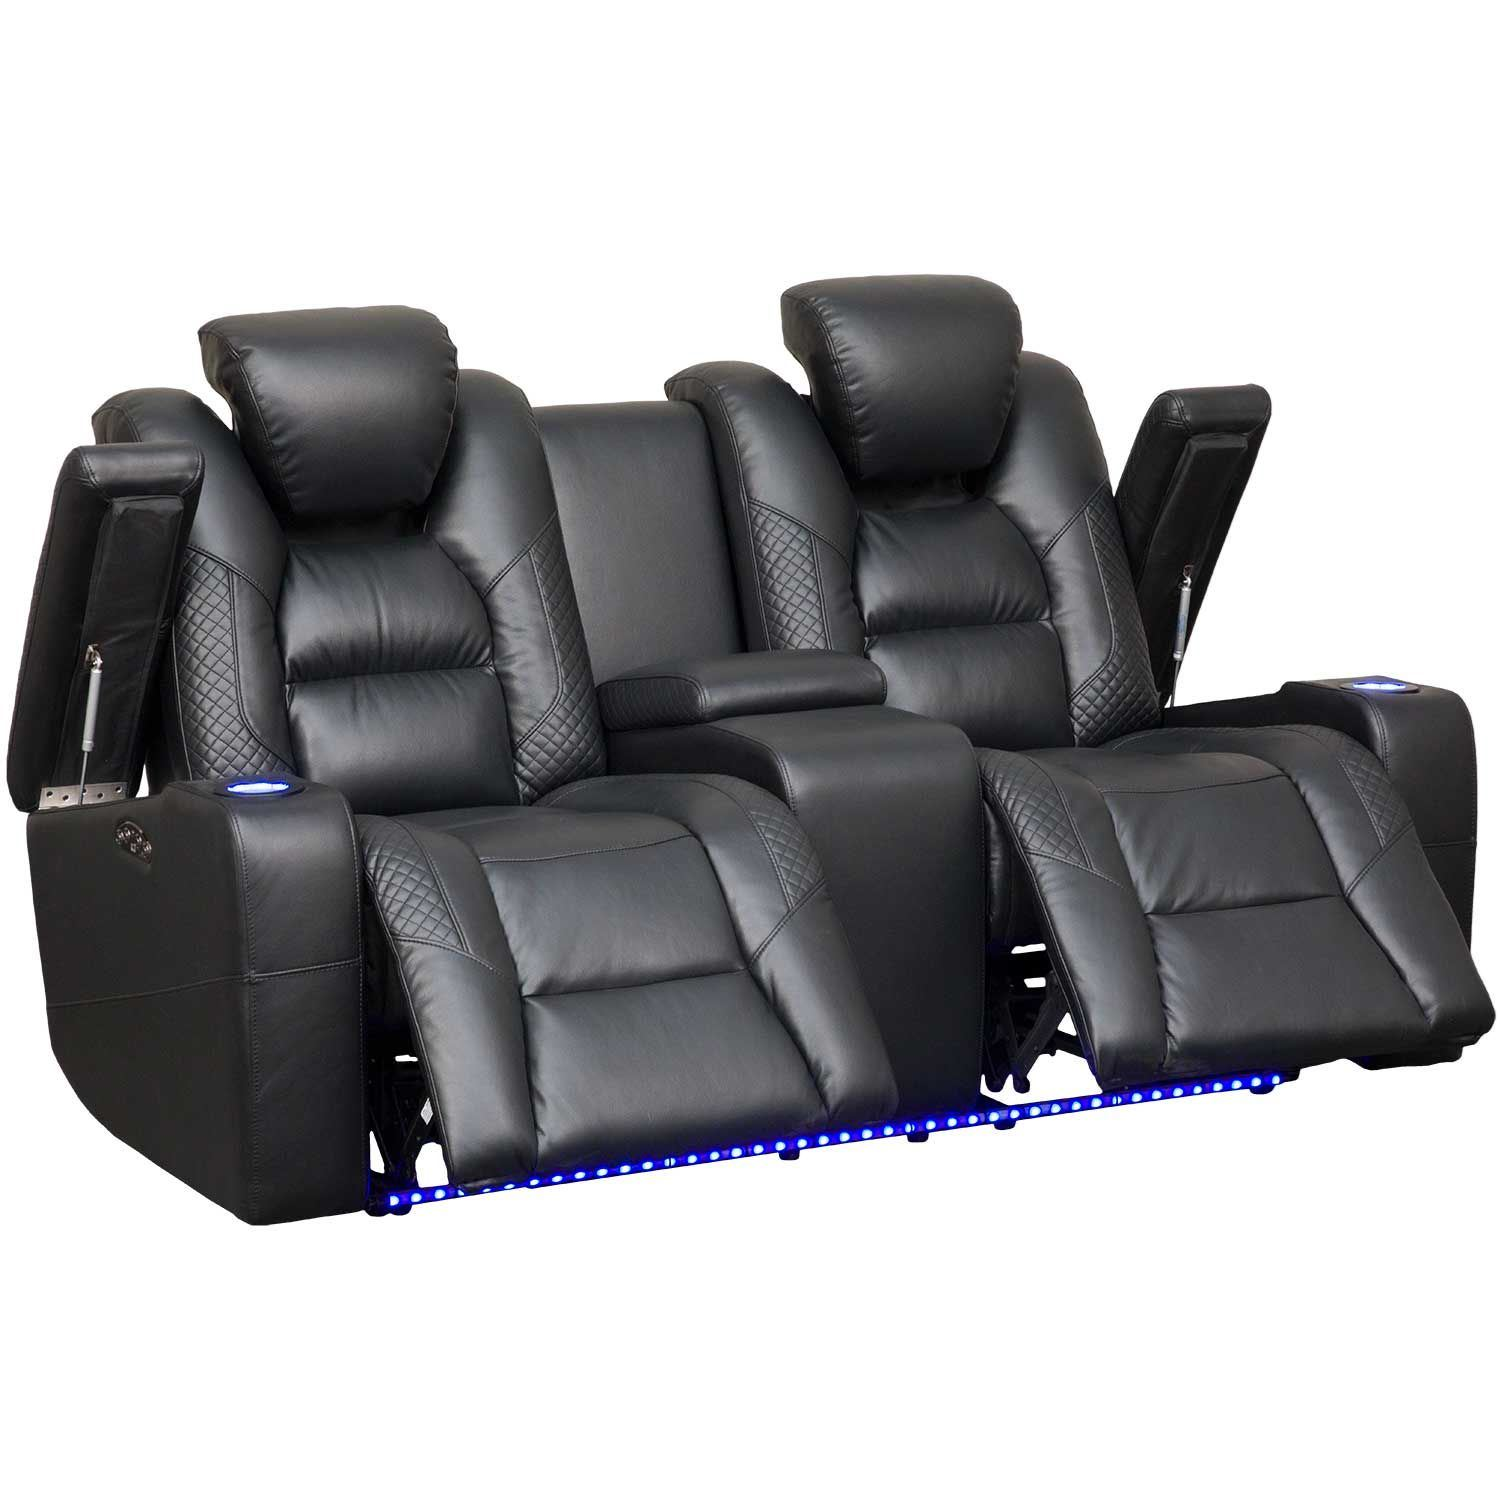 Marvelous Ryker Power Reclining Console Loveseat Caraccident5 Cool Chair Designs And Ideas Caraccident5Info